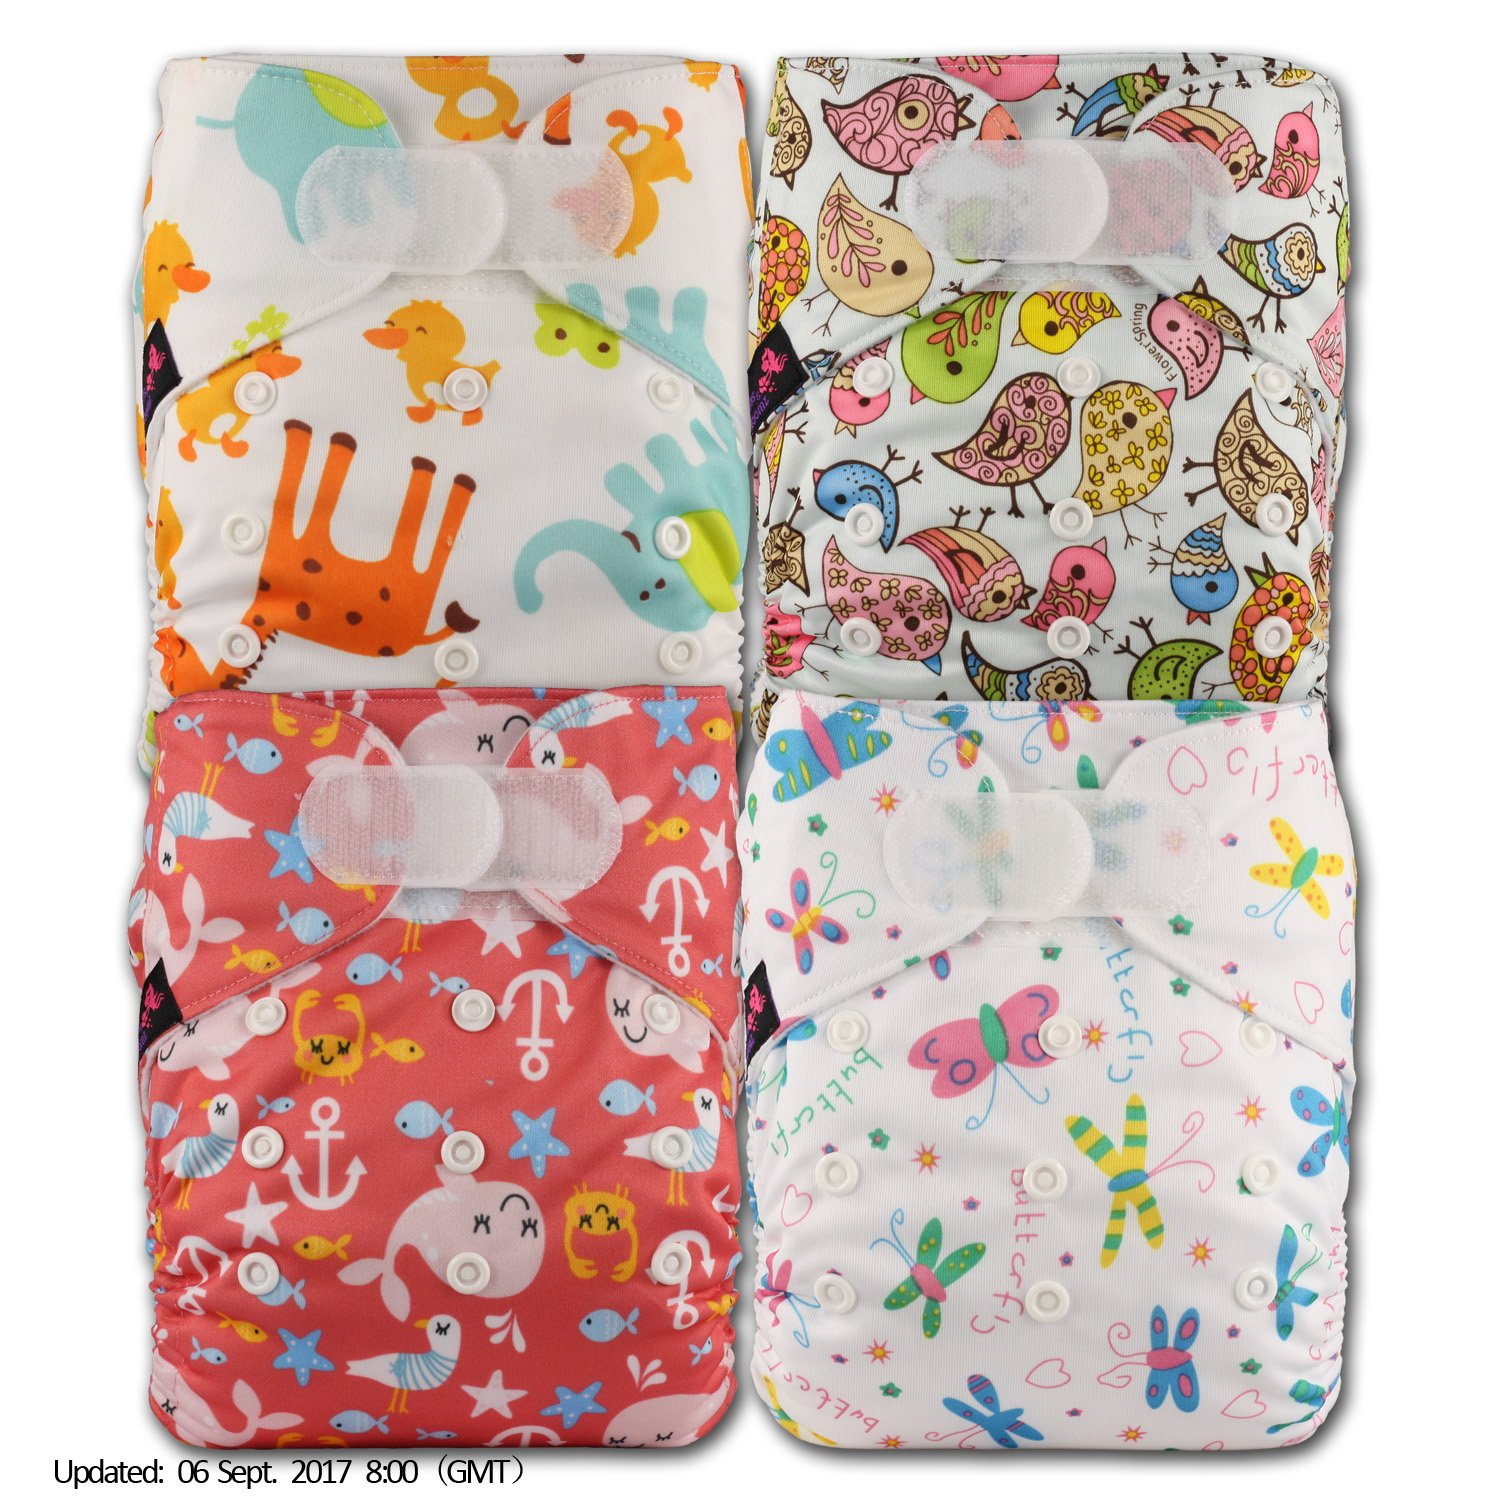 Littles & Bloomz, Reusable Pocket Cloth Nappy, Fastener: Hook-Loop, Set of 4, Patterns 417, With 8 Microfibre Inserts